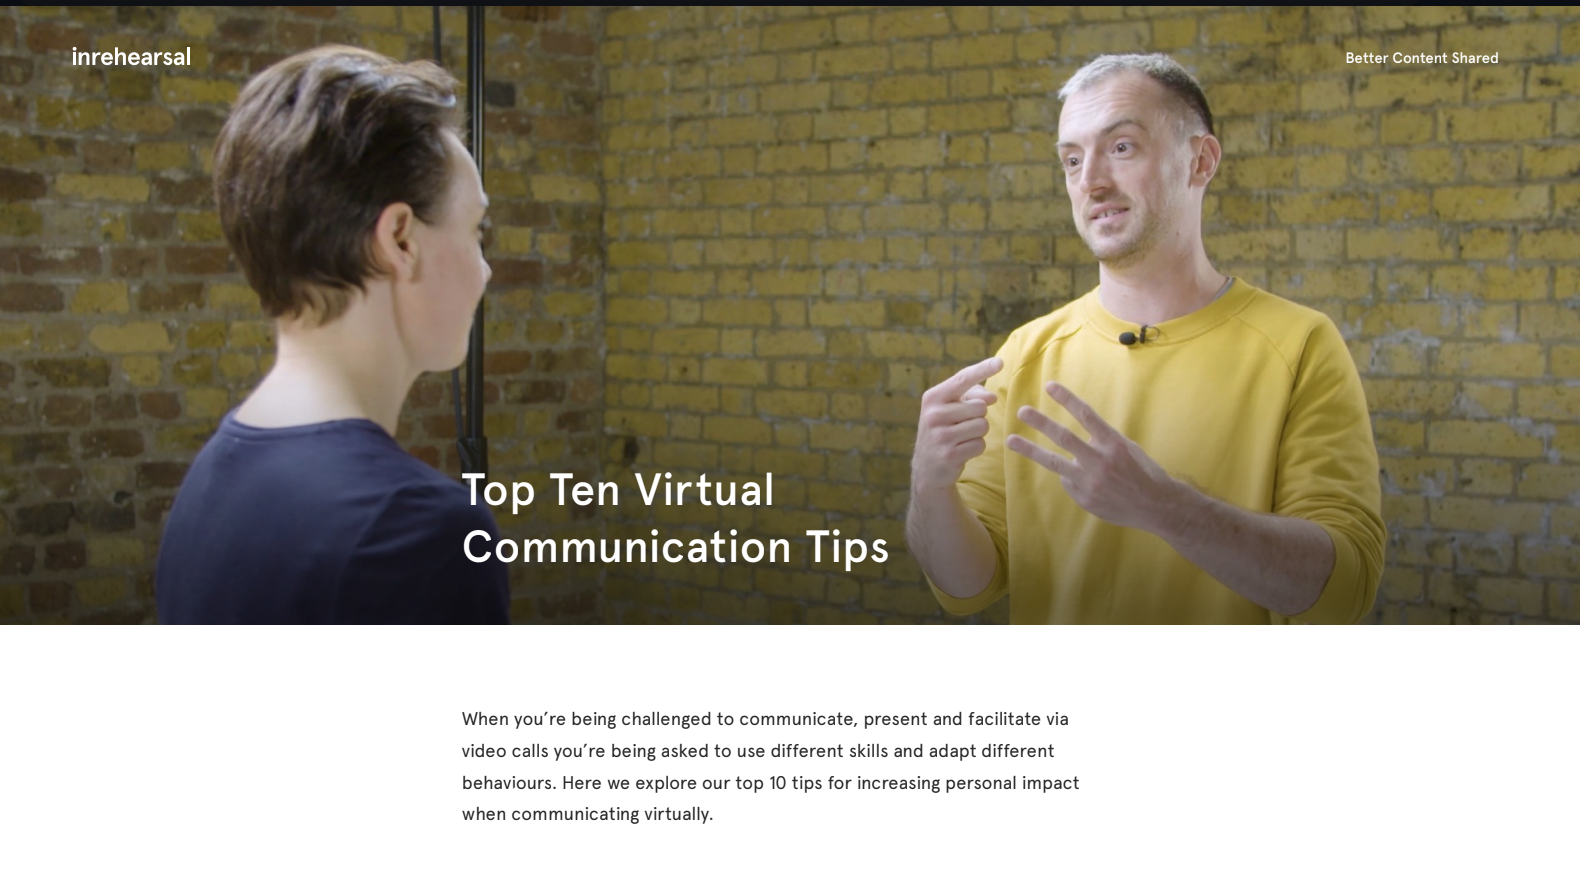 A screenshot of an article called Top Ten Virtual Communication Tips, showing two people speaking